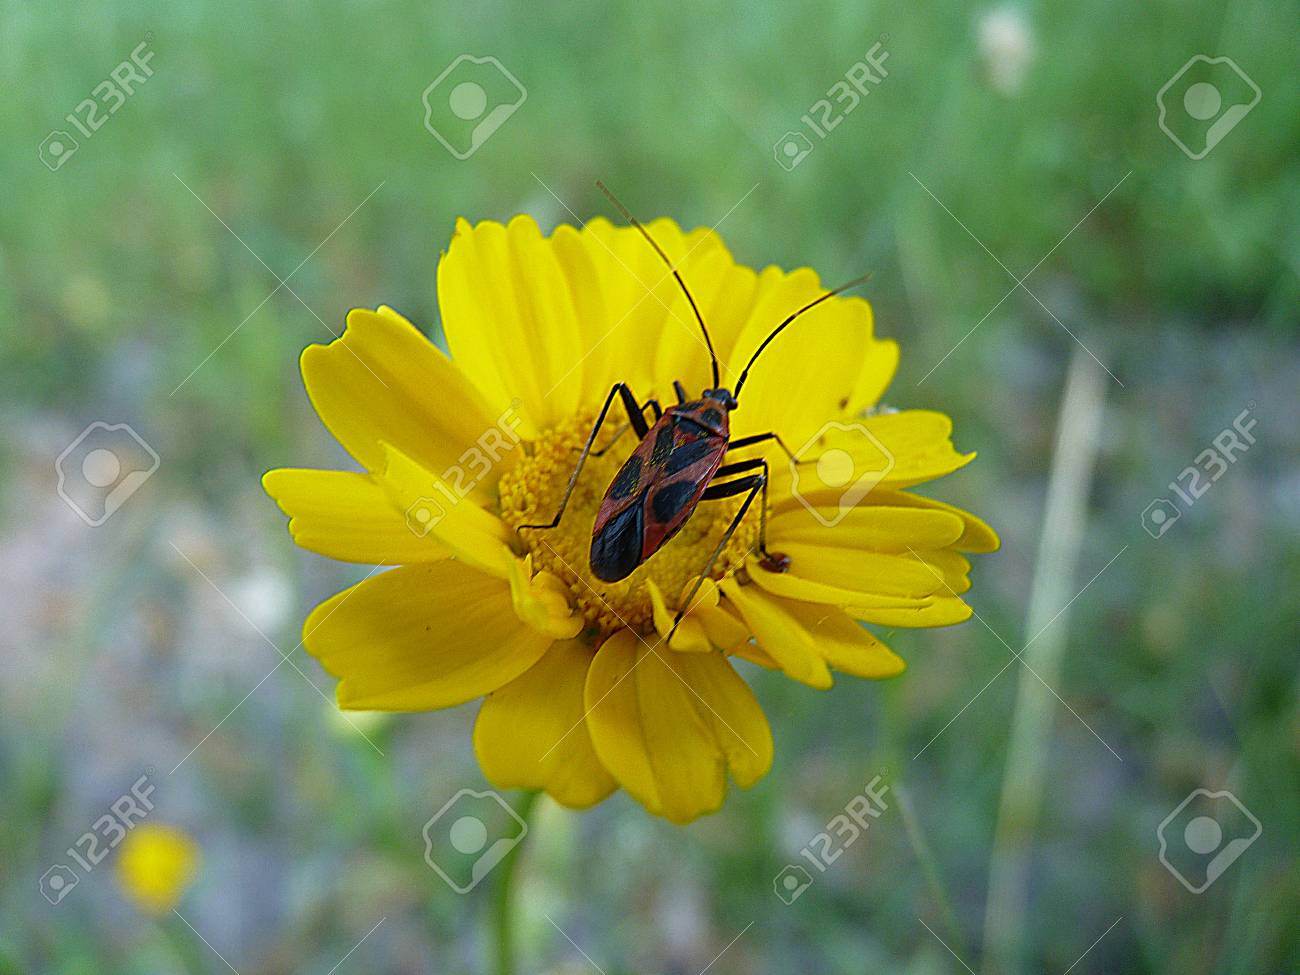 Yellow Flower With Insect In The Center Taking Nectar